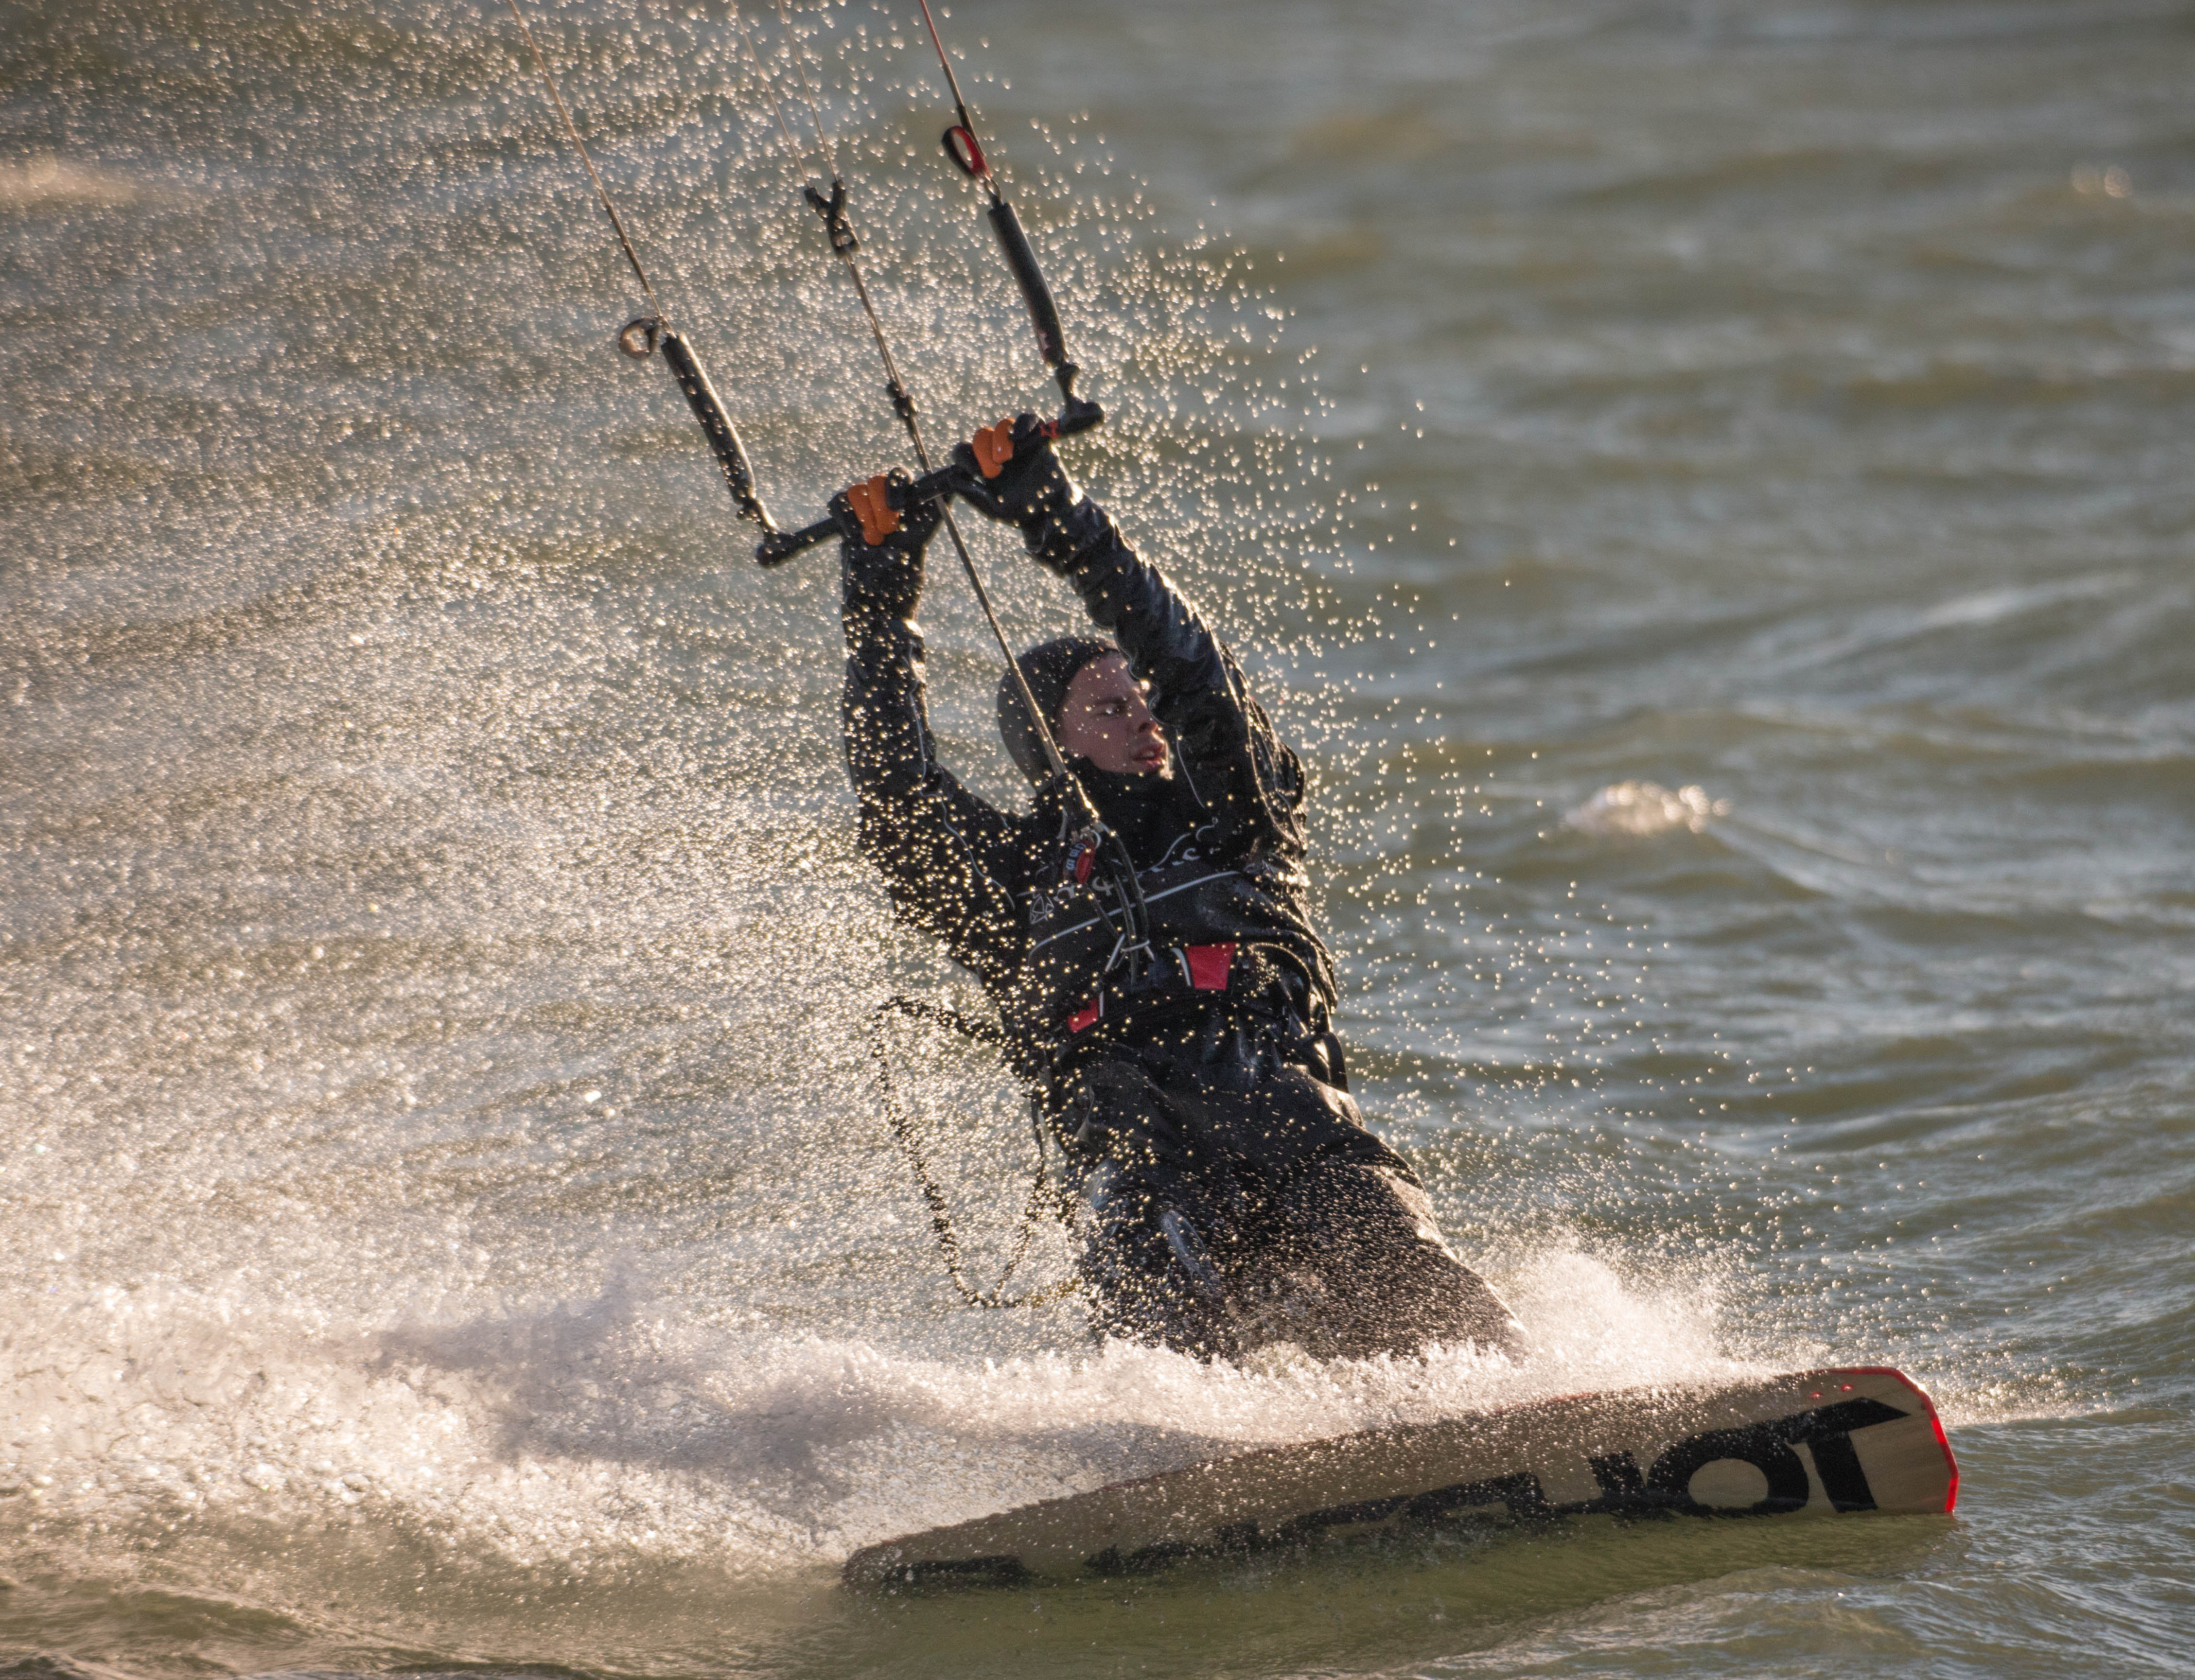 Ryan McGraw of Amherst takes advantage of abnormally warm temperatures and high wind to do some kite surfing in the Outer Harbor, Saturday, Feb. 18, 2017.  (Derek Gee/Buffalo News)